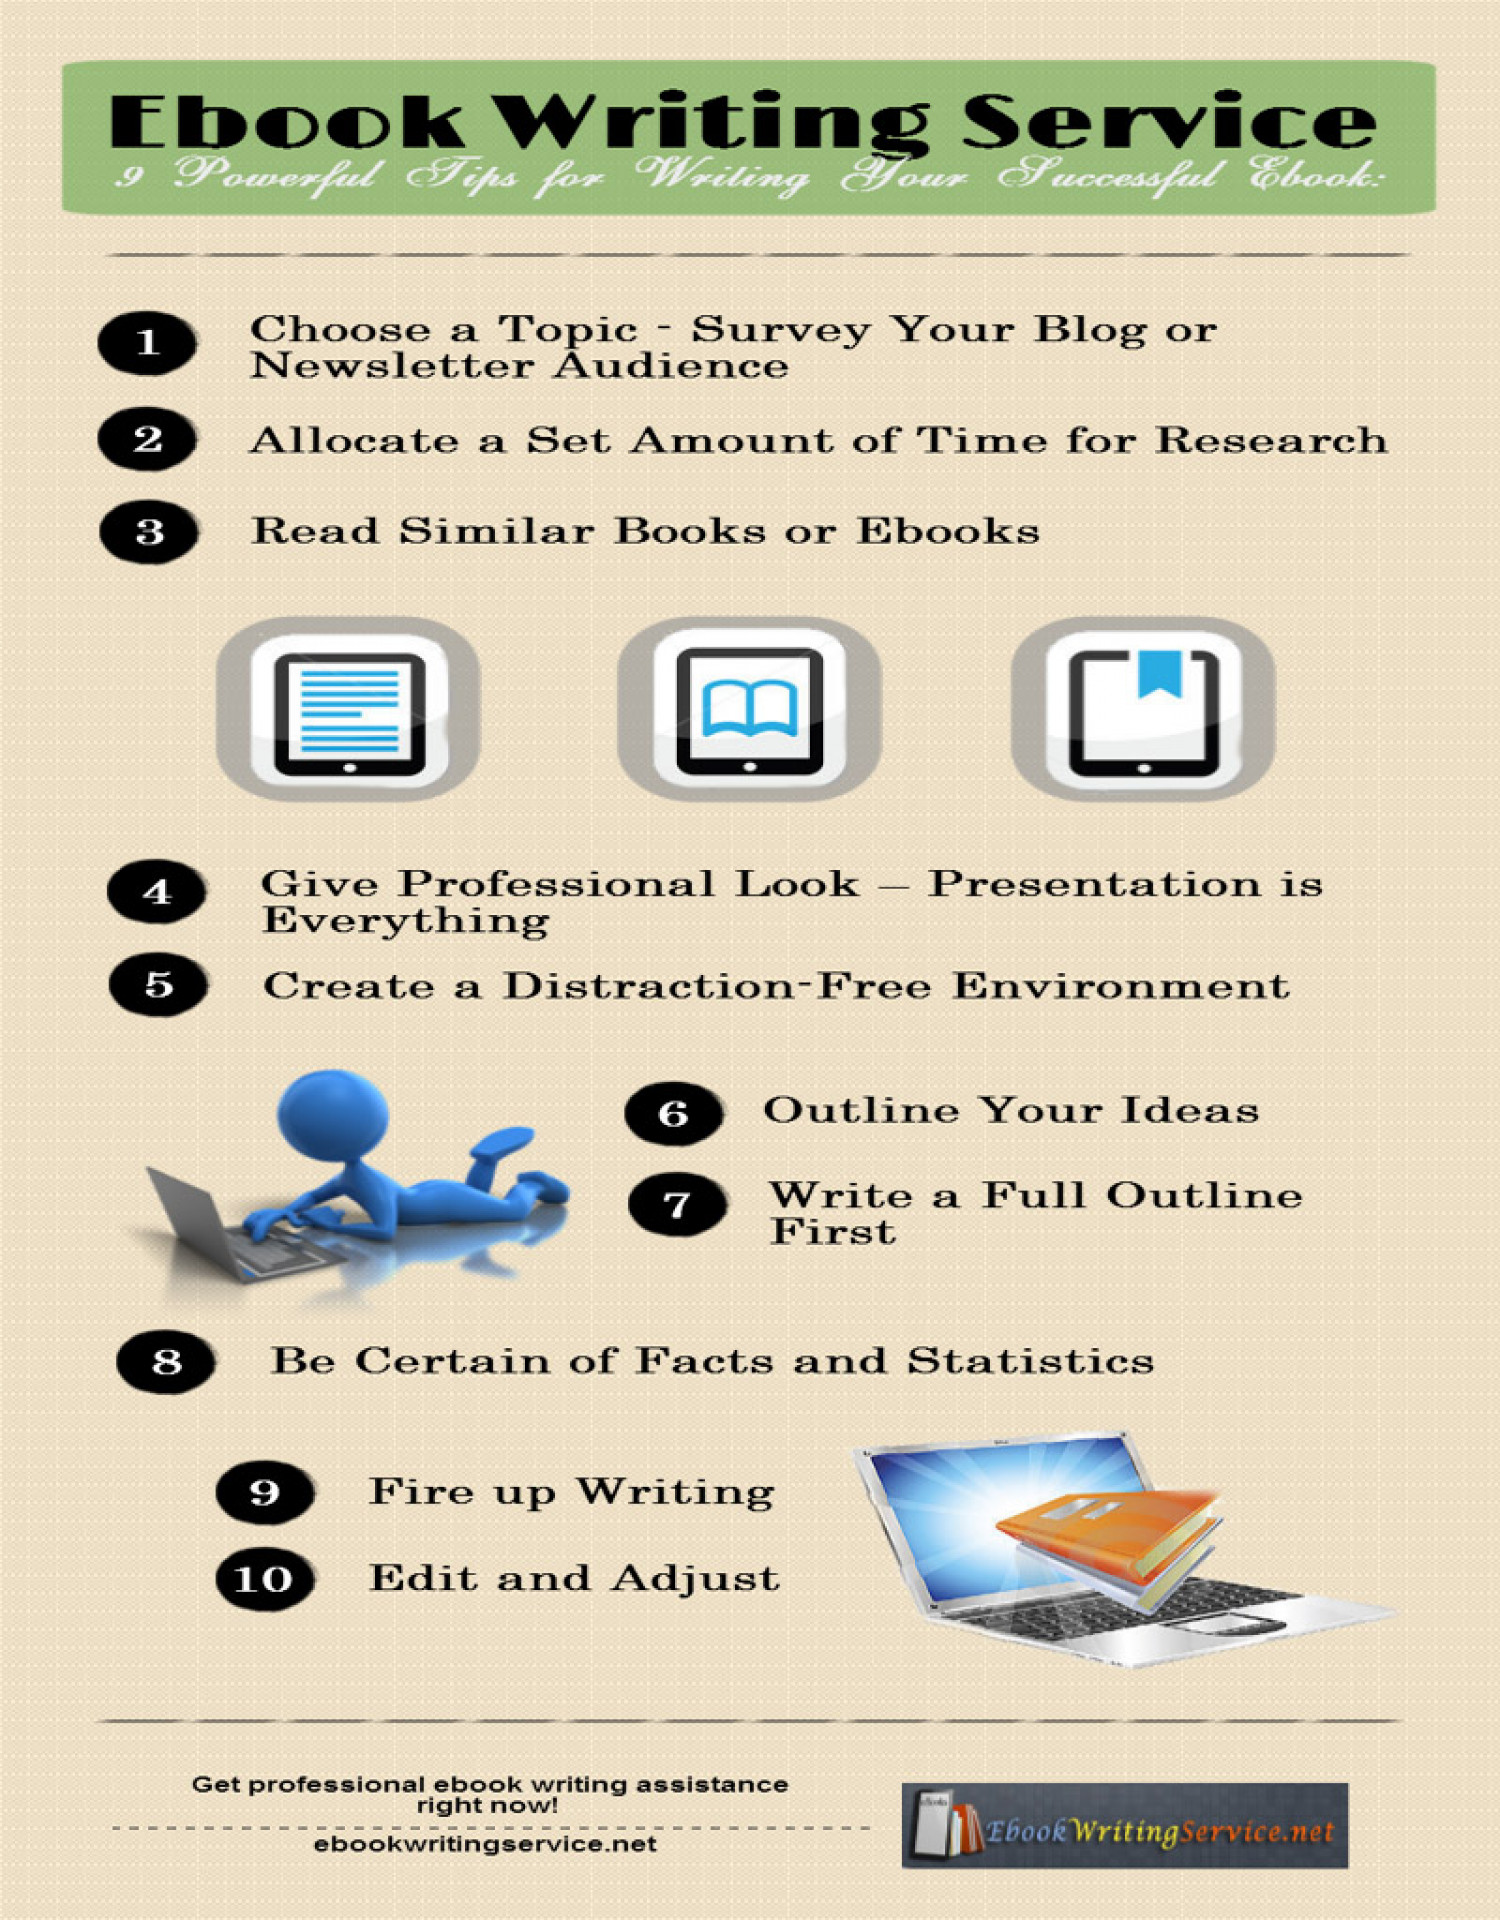 Ebook Writing Service Infographic